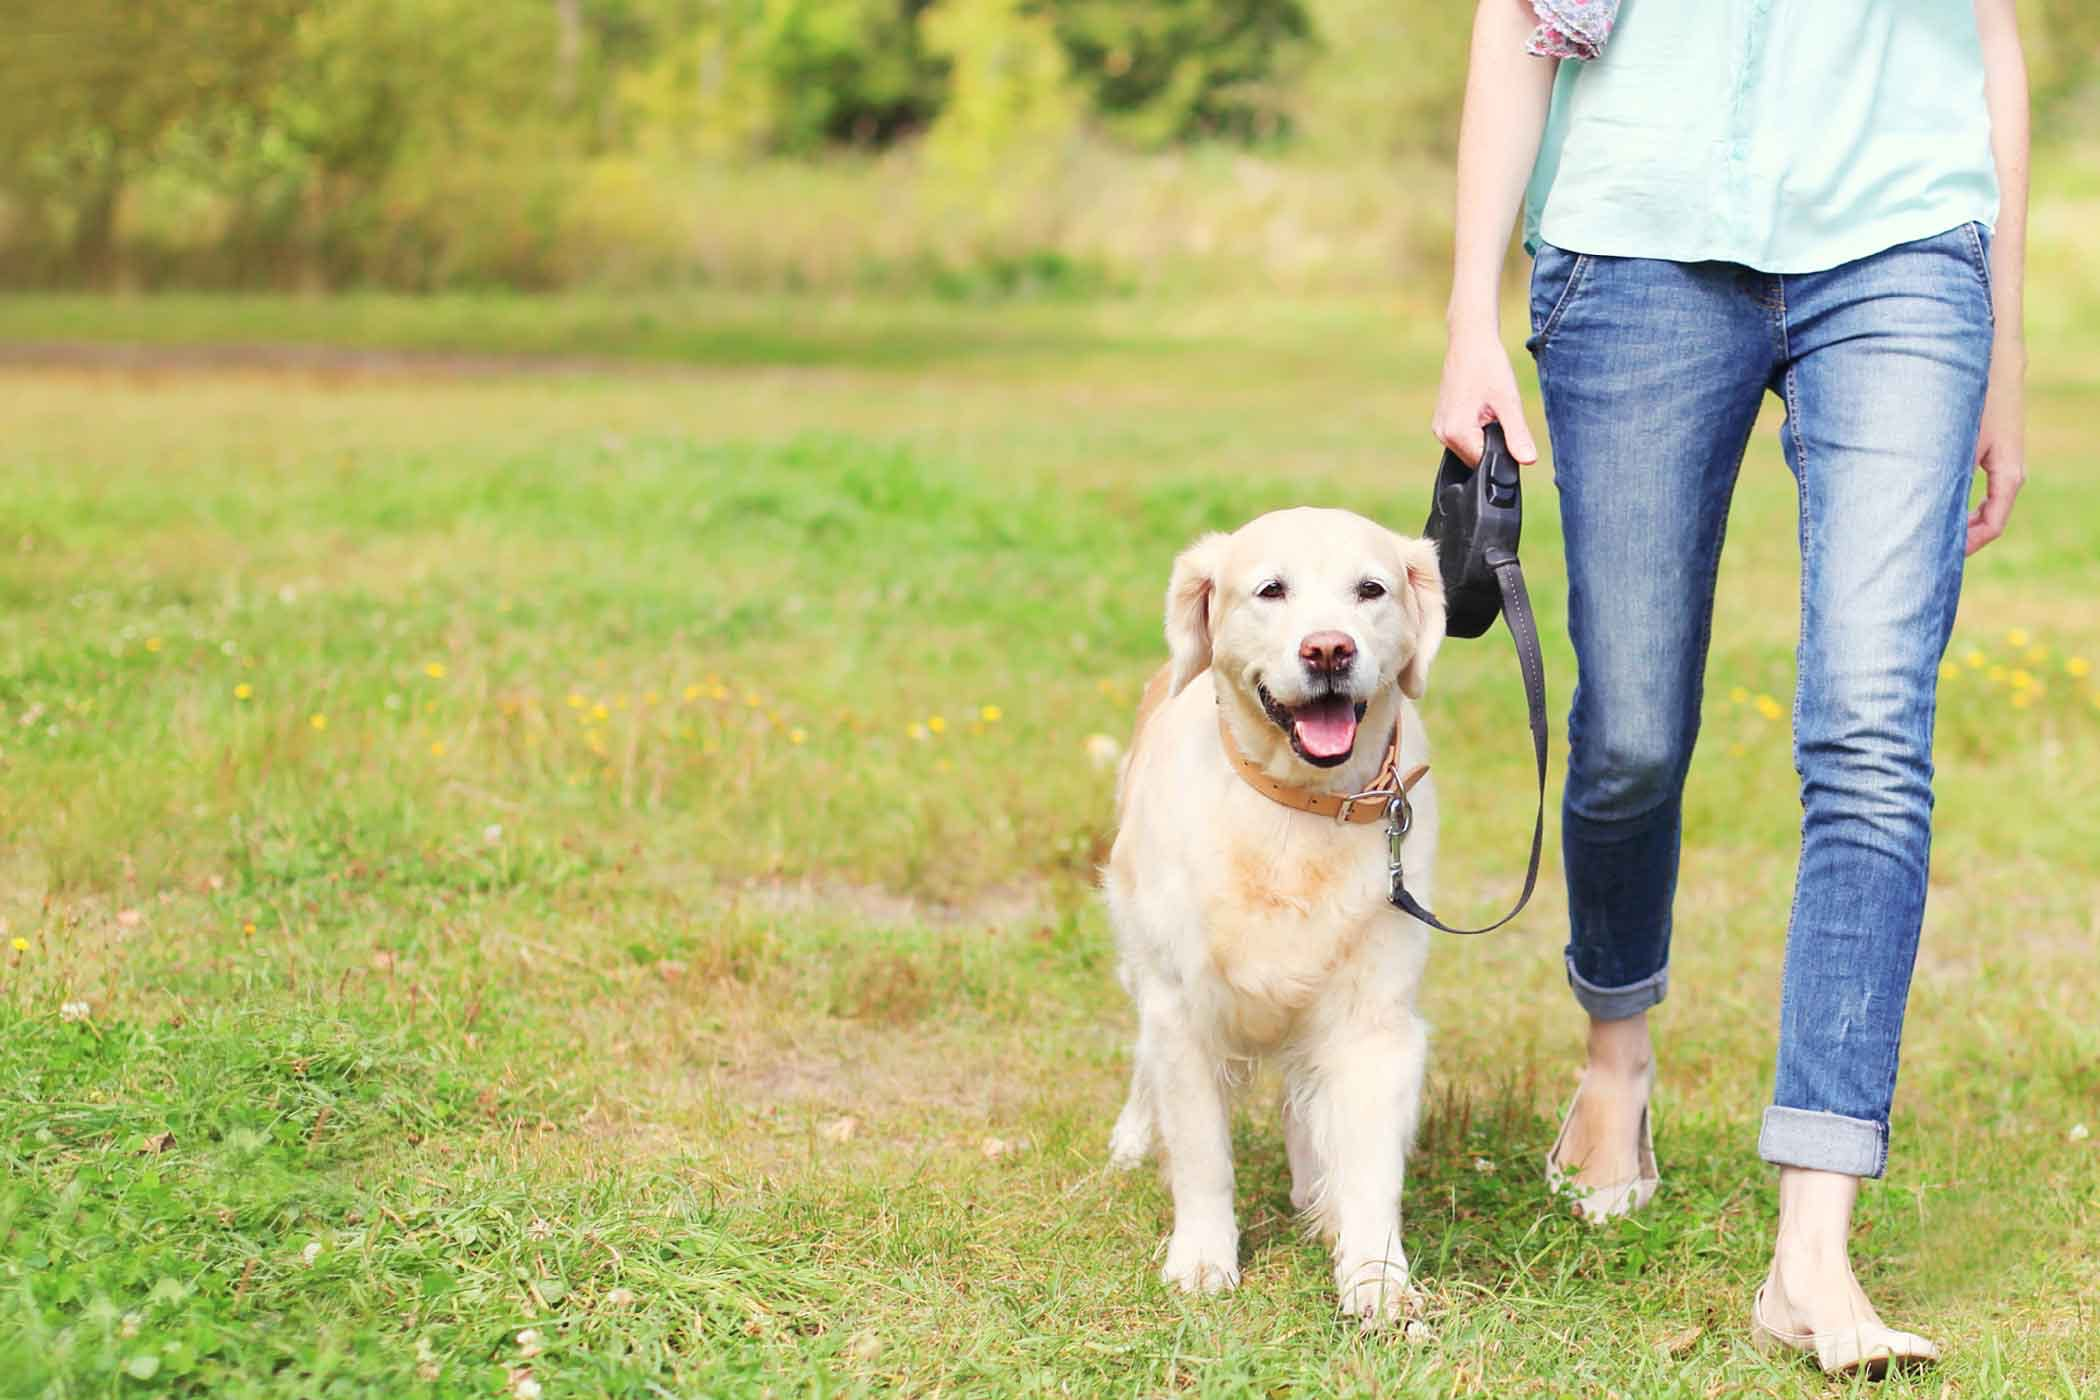 How to Train Your Dog to Heel While Walking | How To Train A Dog To Heel